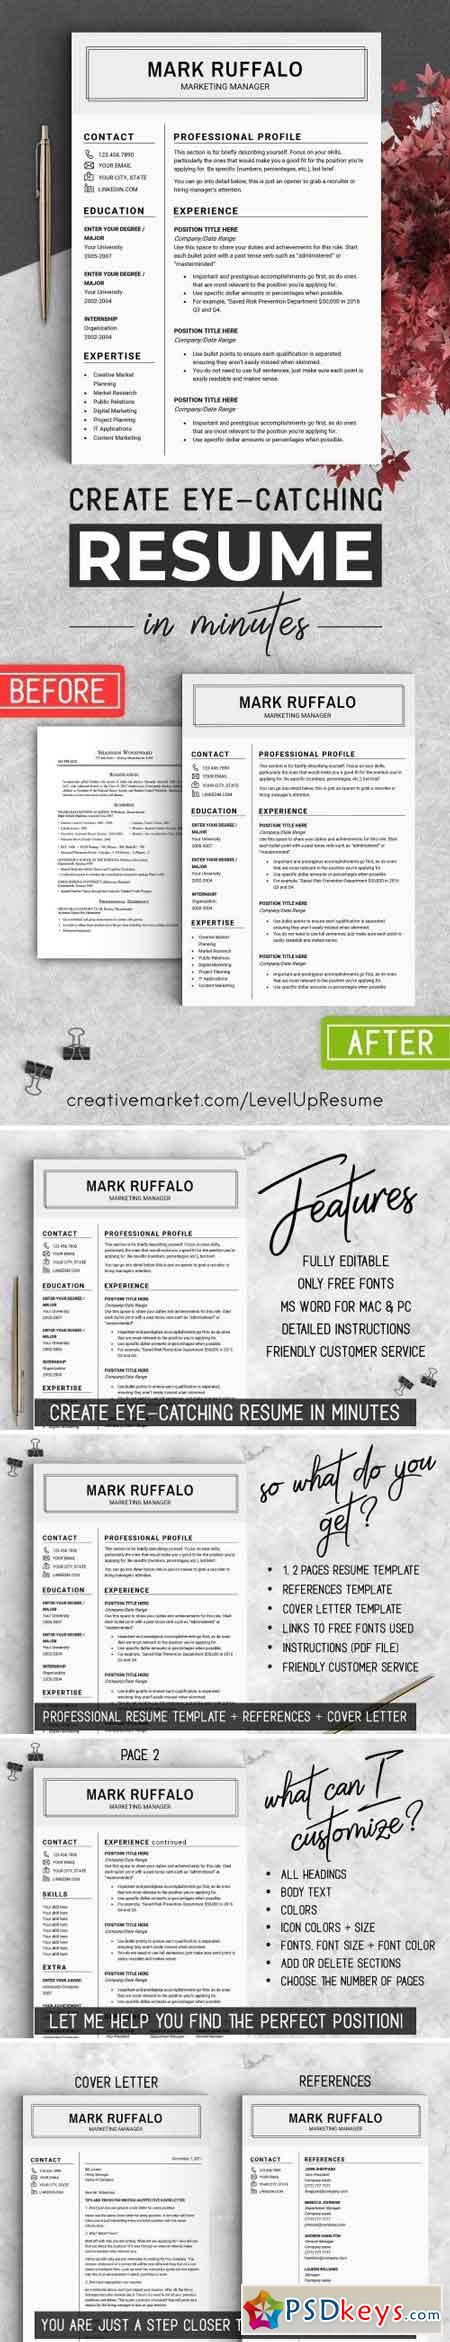 Minimalist Resume Template Cv   Free Download Photoshop